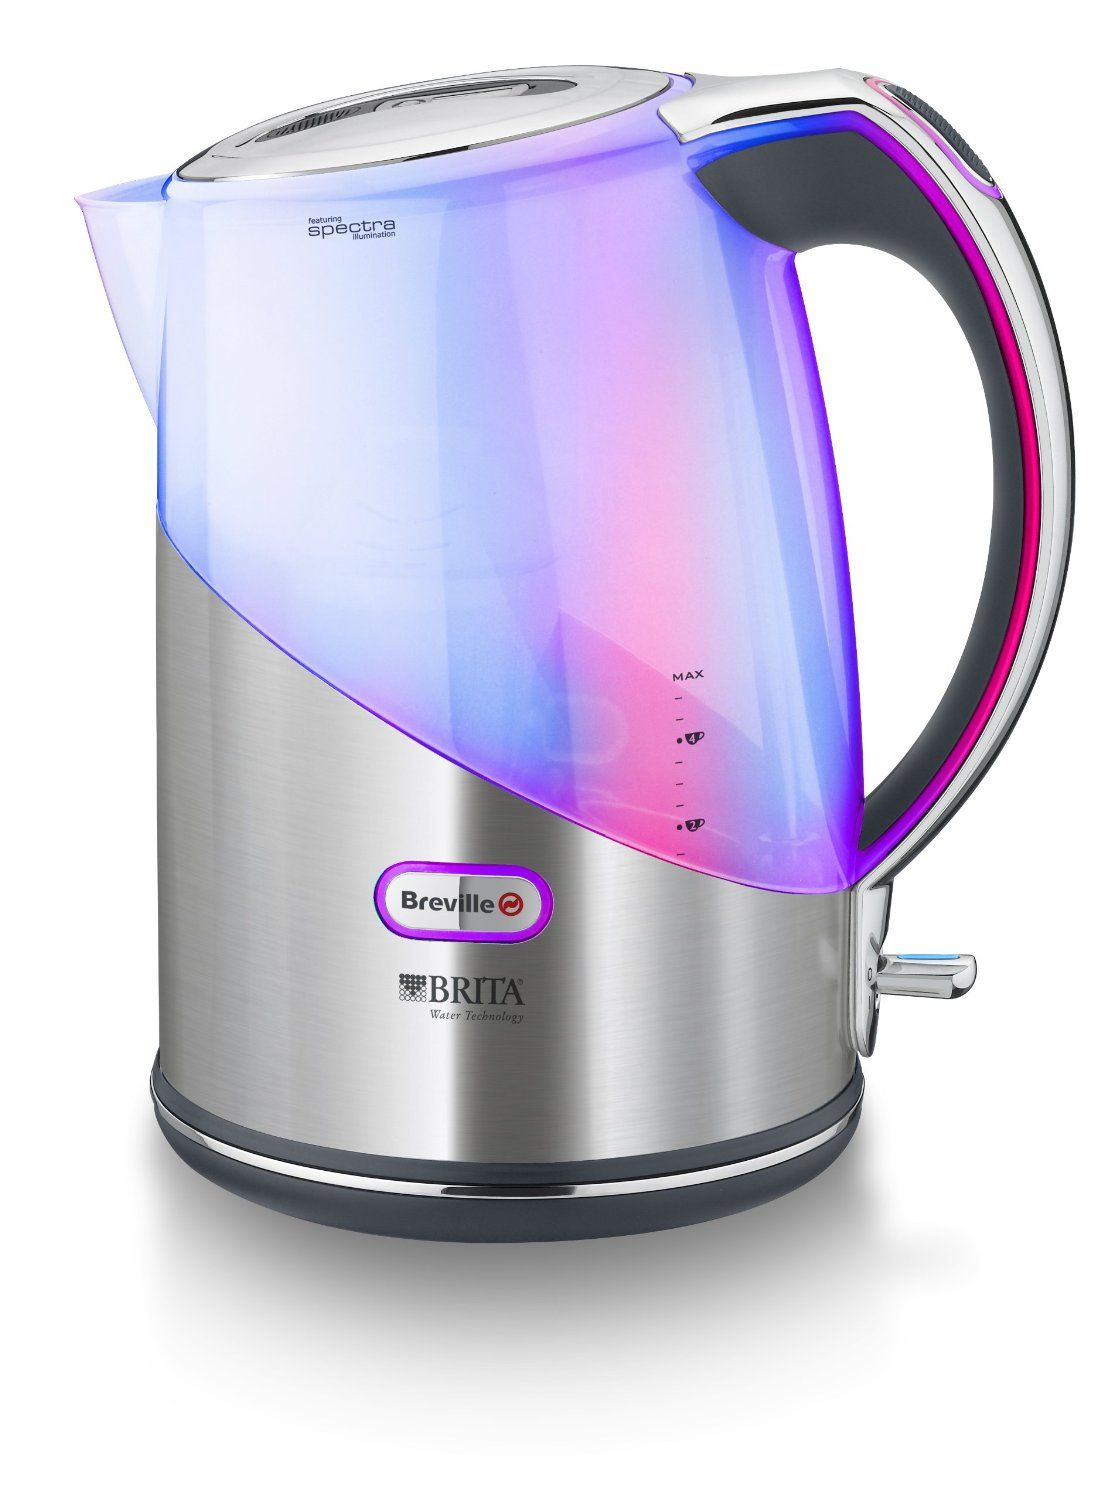 Coloured Small Kitchen Appliances Breville Brushed Stainless Steel Brita Filter Kettle With Spectra